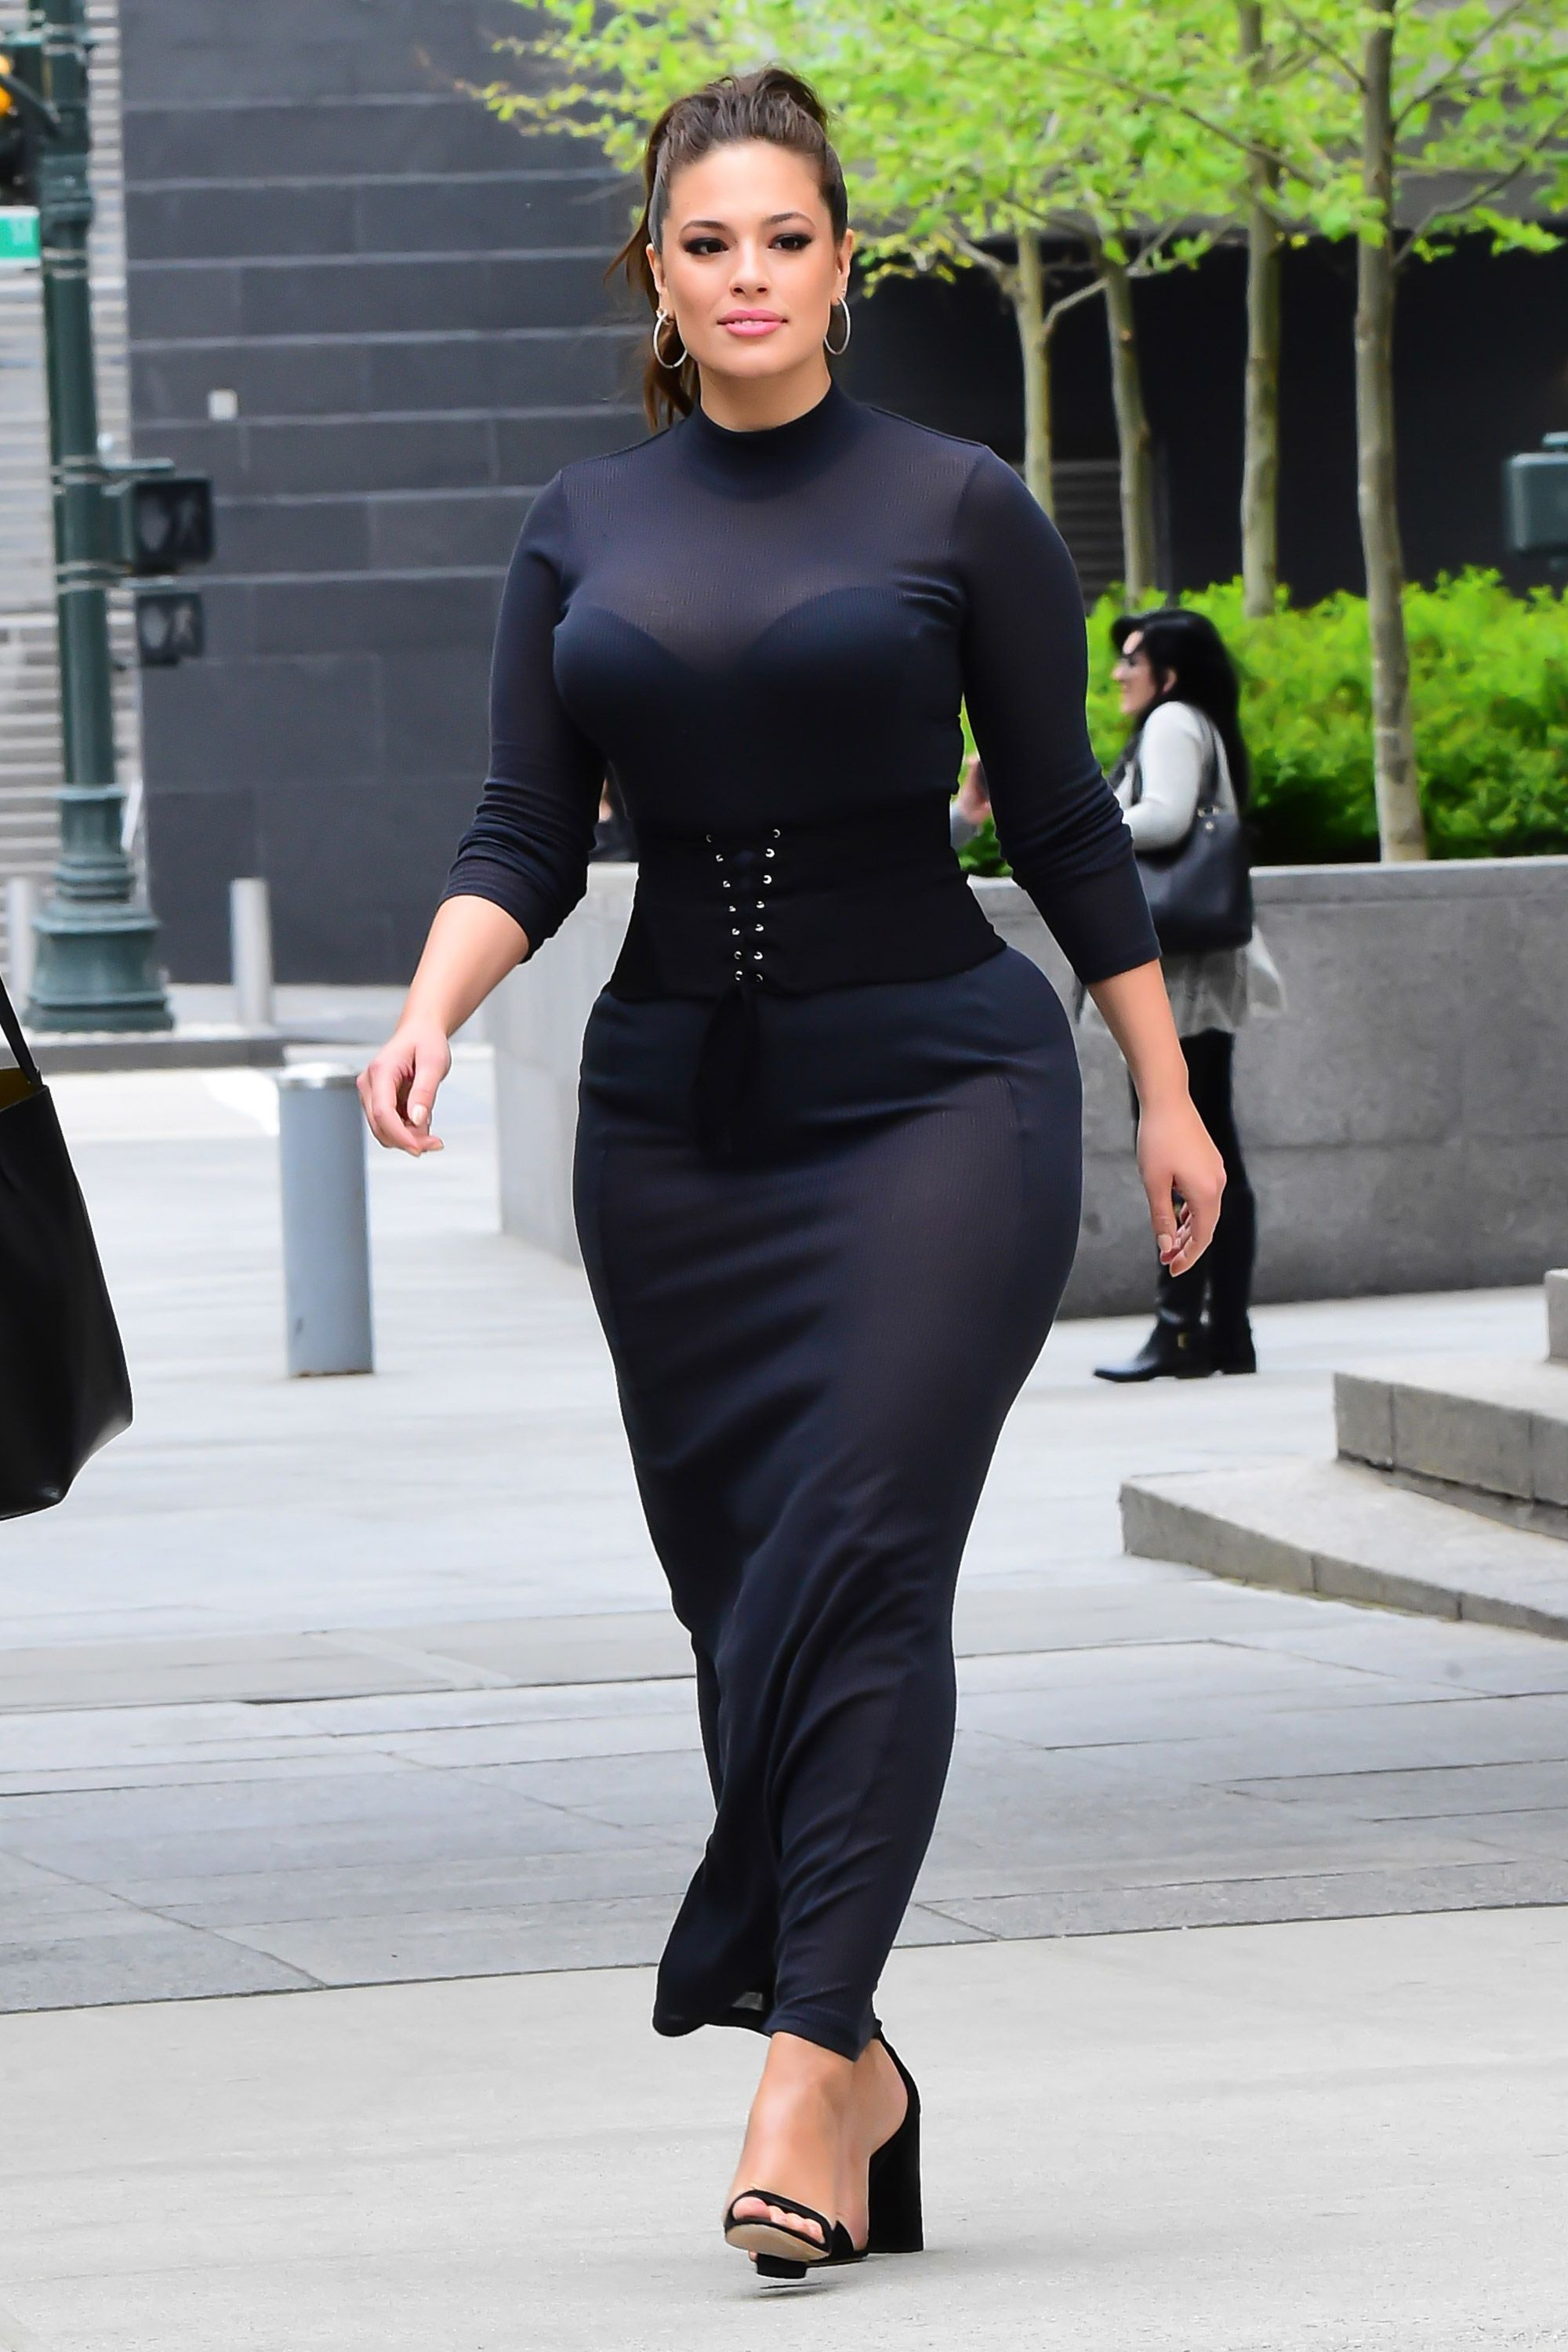 Ashley Graham Ashley Graham Photo 41674335 Fanpop